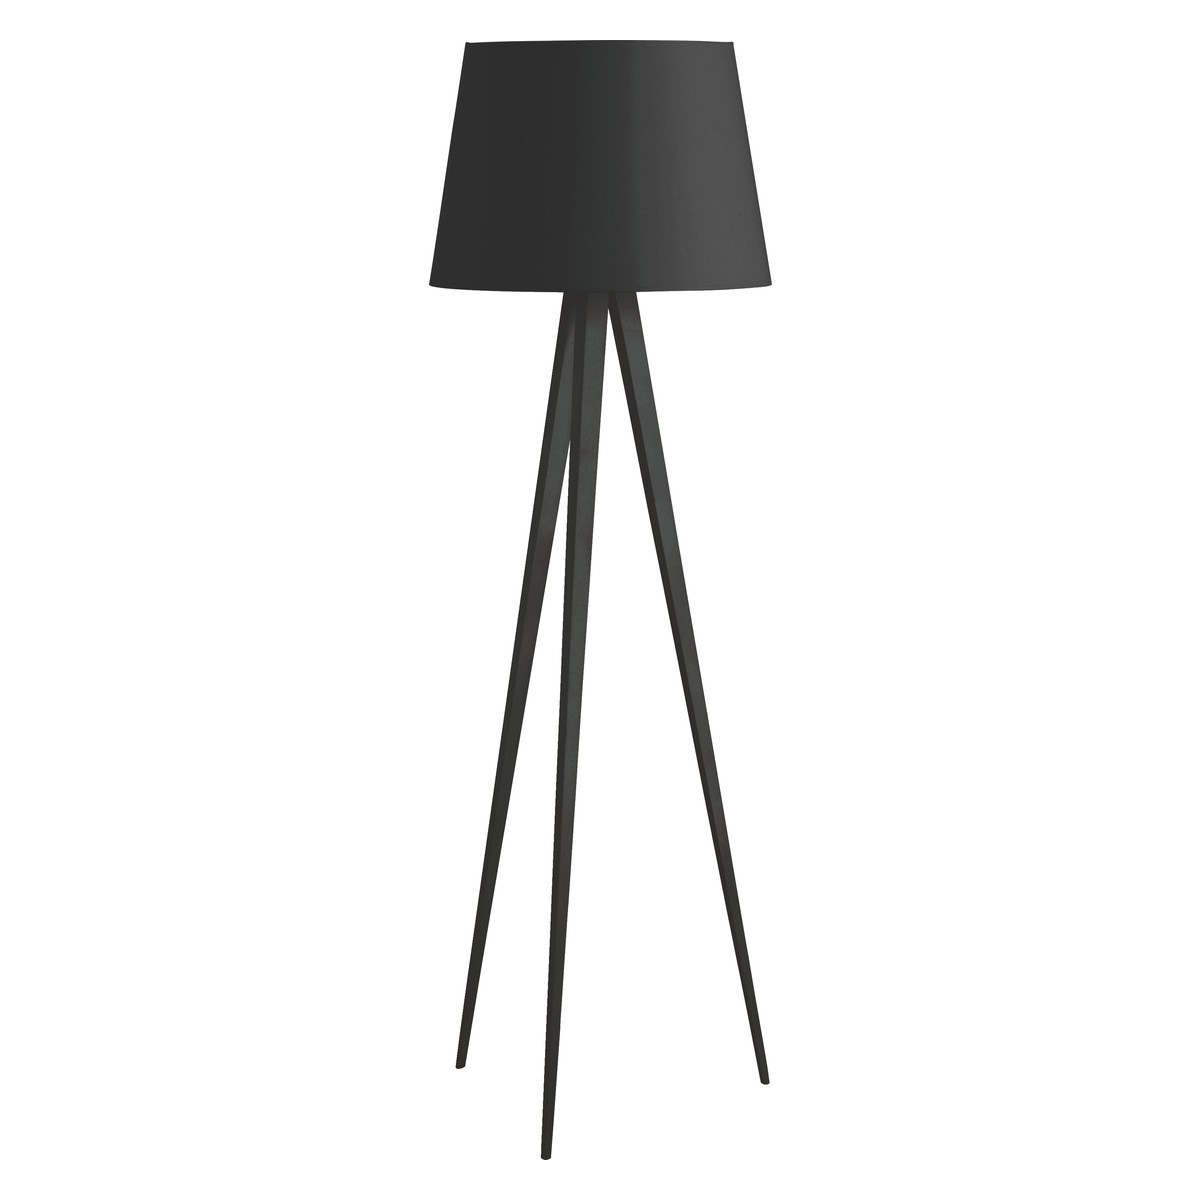 Tripod Lamp | Antique Floor Lamps | Wooden Tripod Floor Lamps